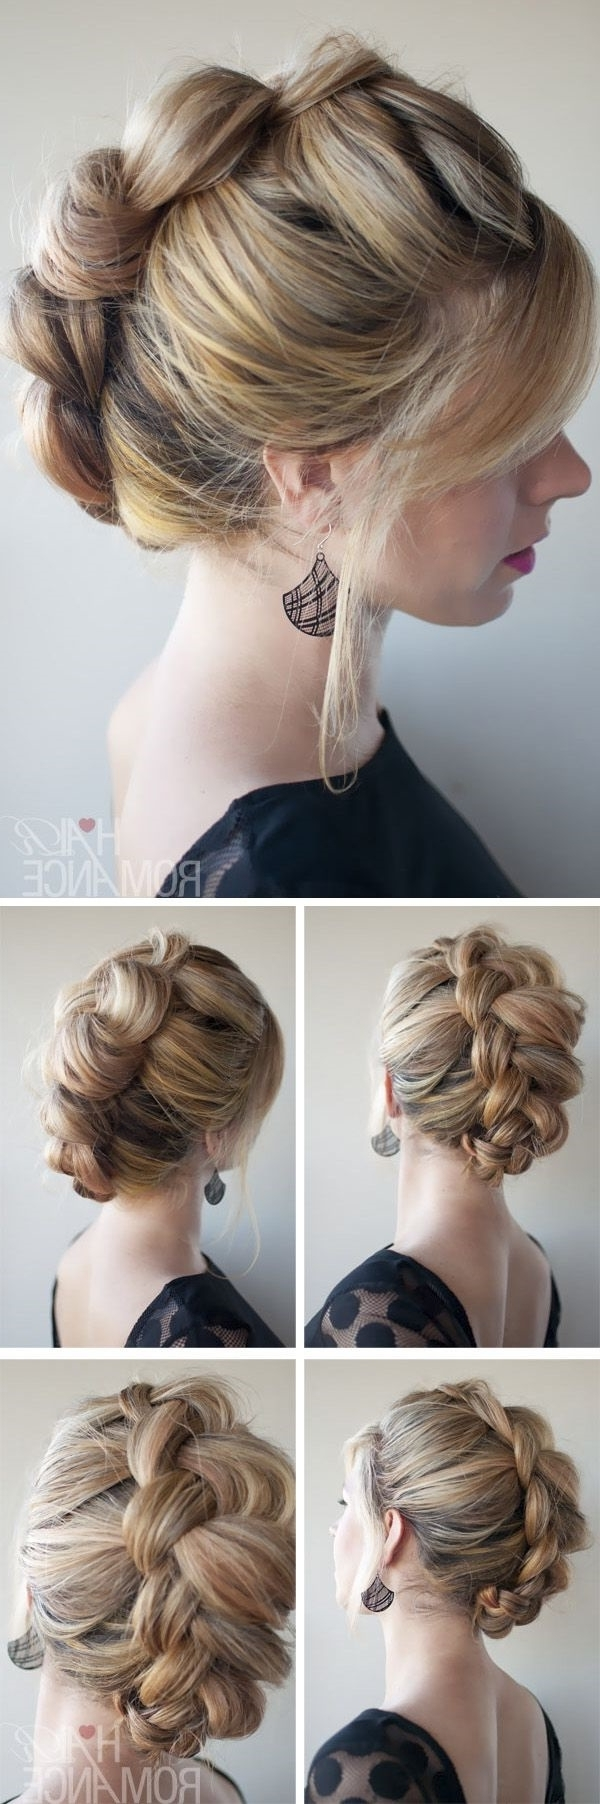 2018 Romantic Braid Hairstyles Pertaining To 101 Romantic Braided Hairstyles For Long Hair And Medium Hair (View 14 of 15)